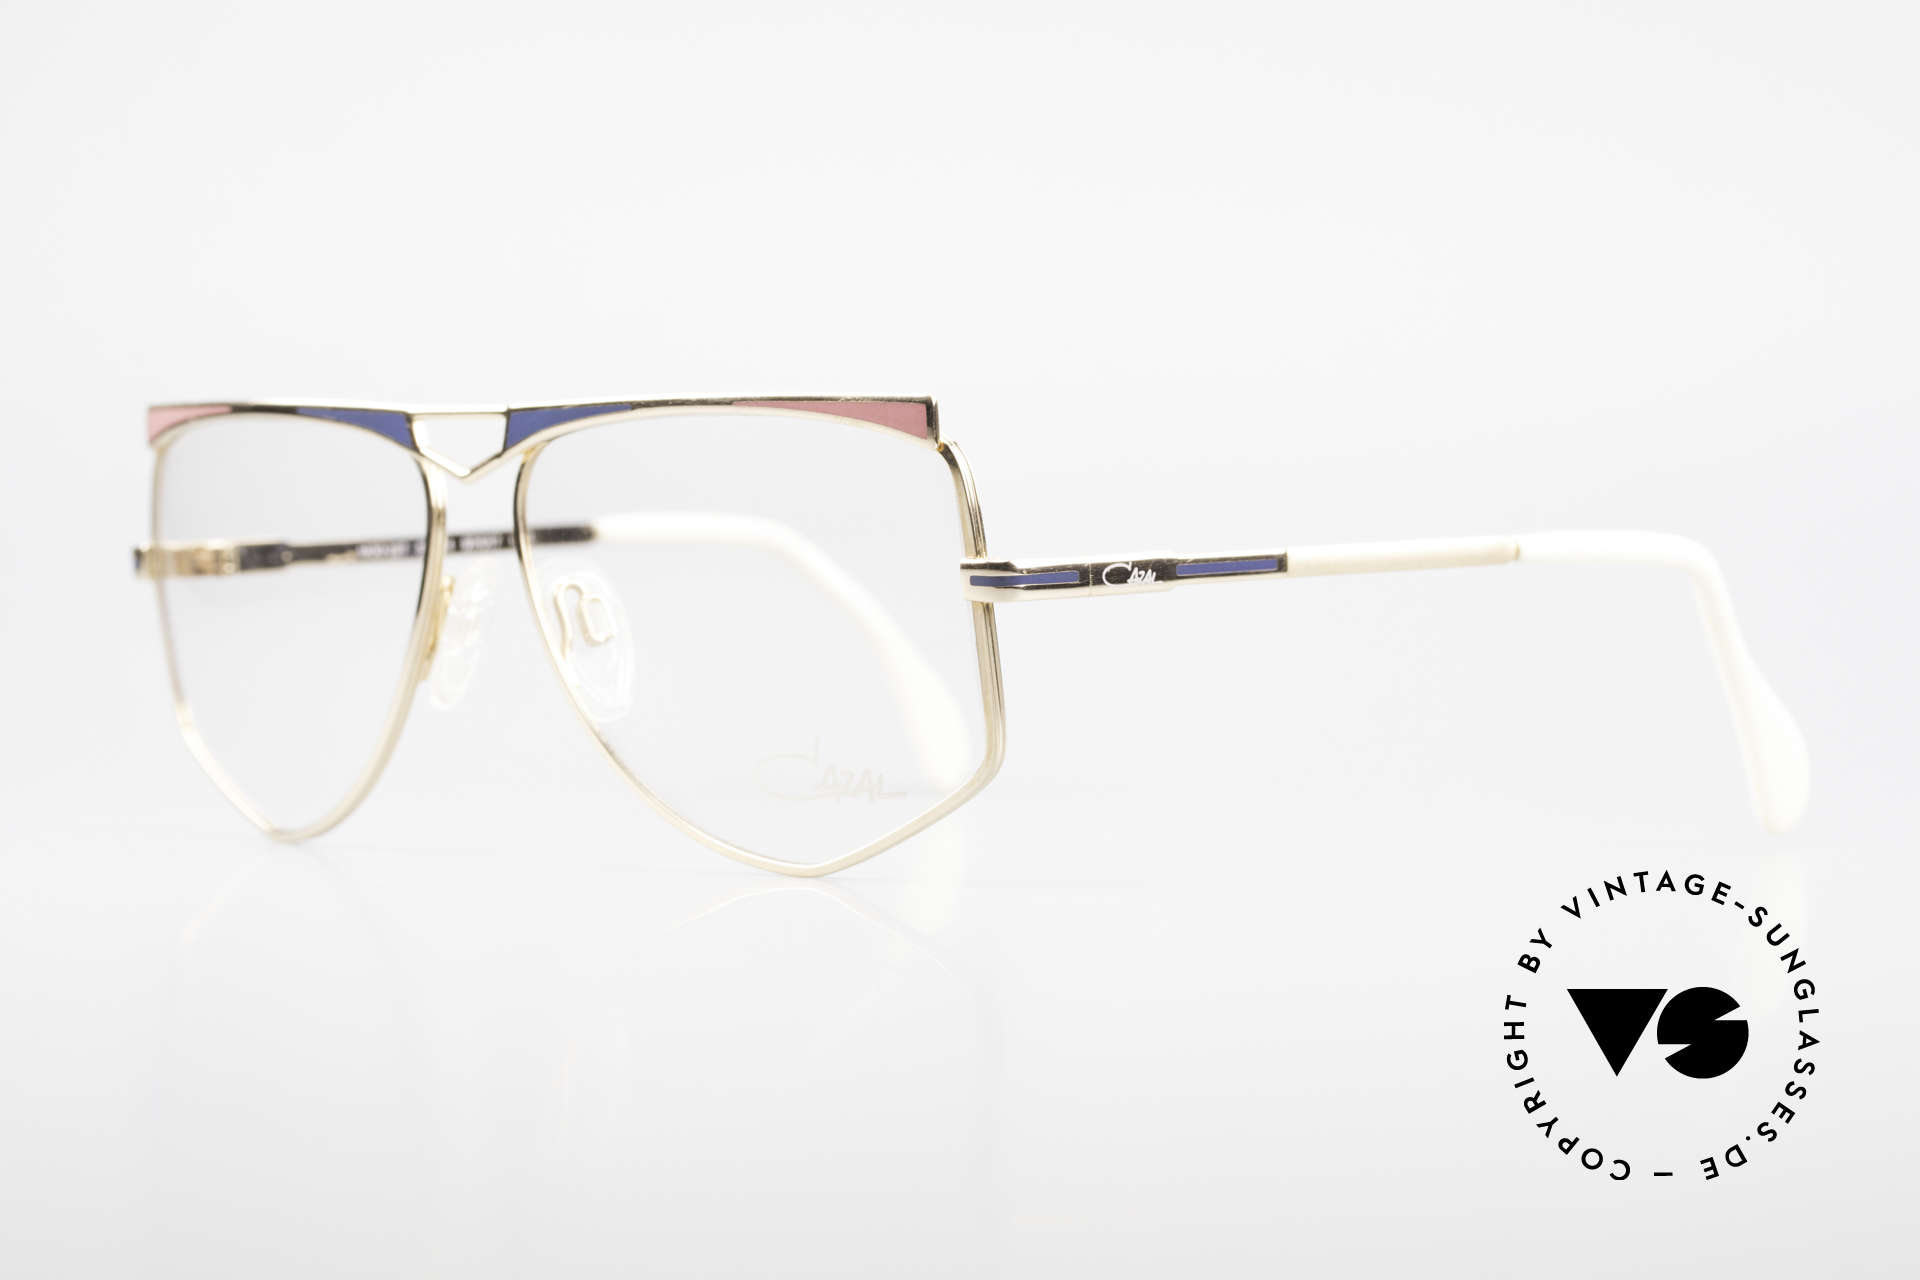 Cazal 227 True Old Vintage Eyeglasses, an old ORIGINAL from app. 1987 (NO RETRO eyeglasses), Made for Women